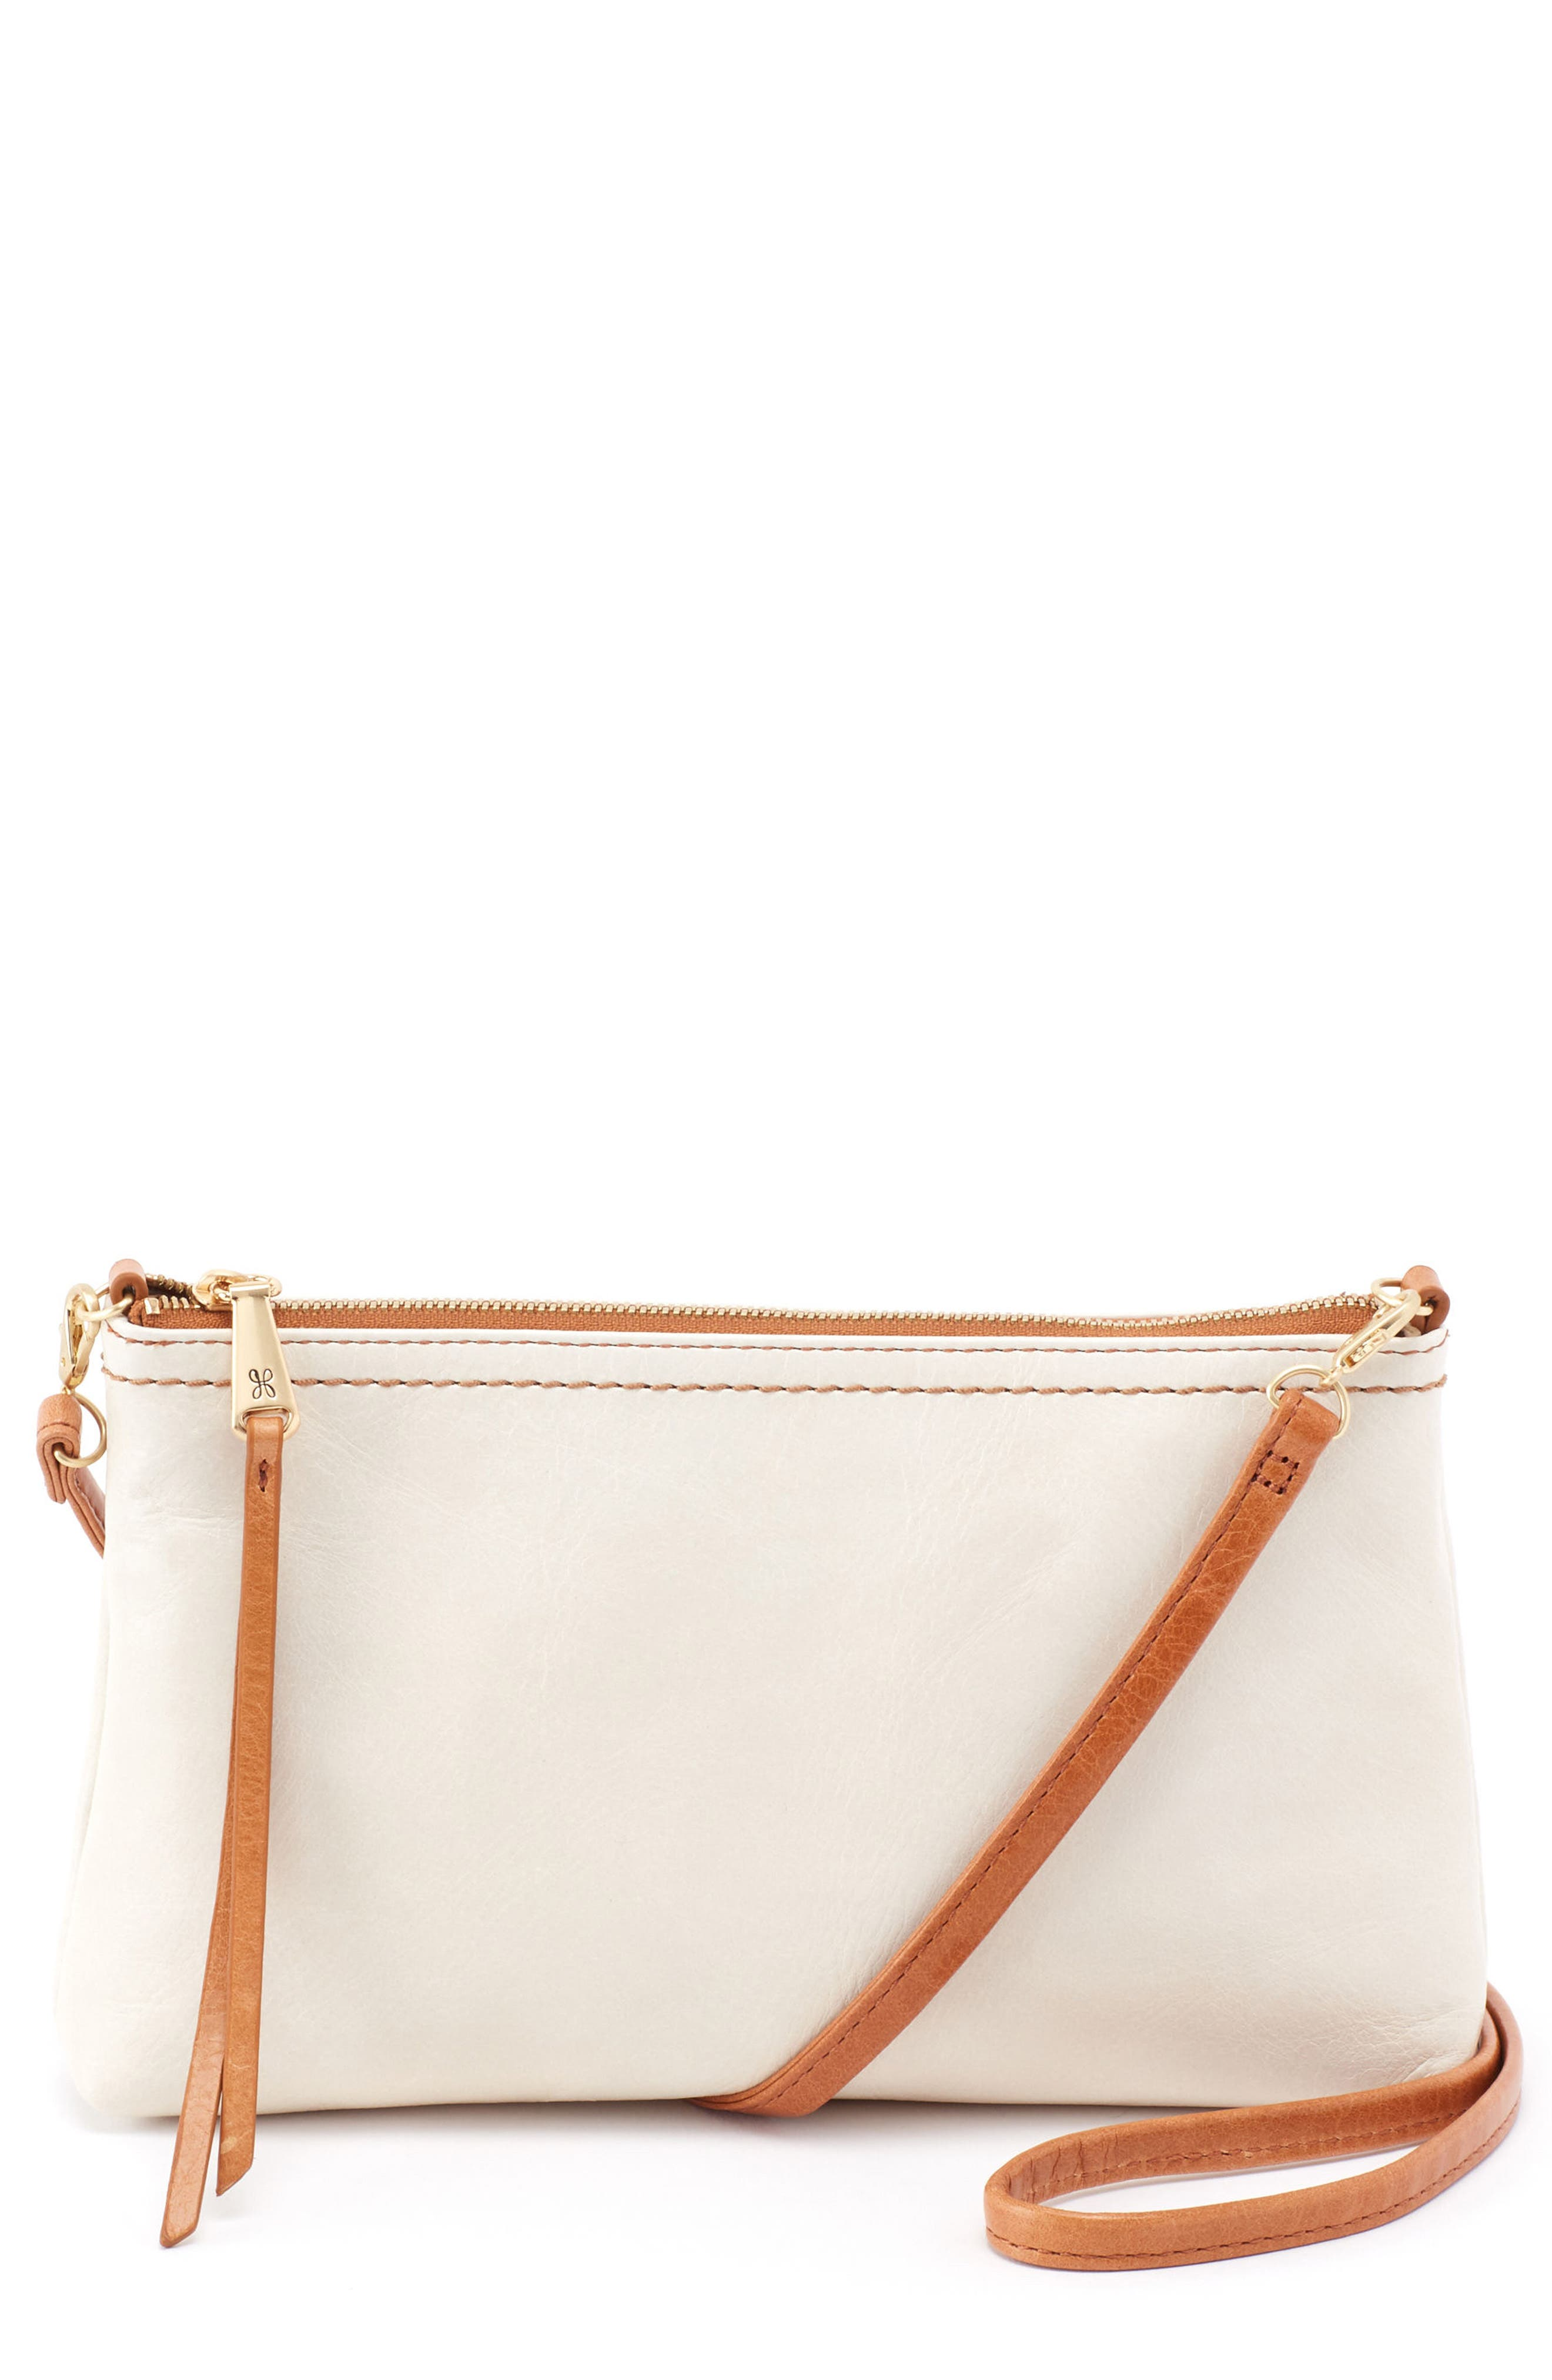 'Darcy' Leather Crossbody Bag,                             Main thumbnail 1, color,